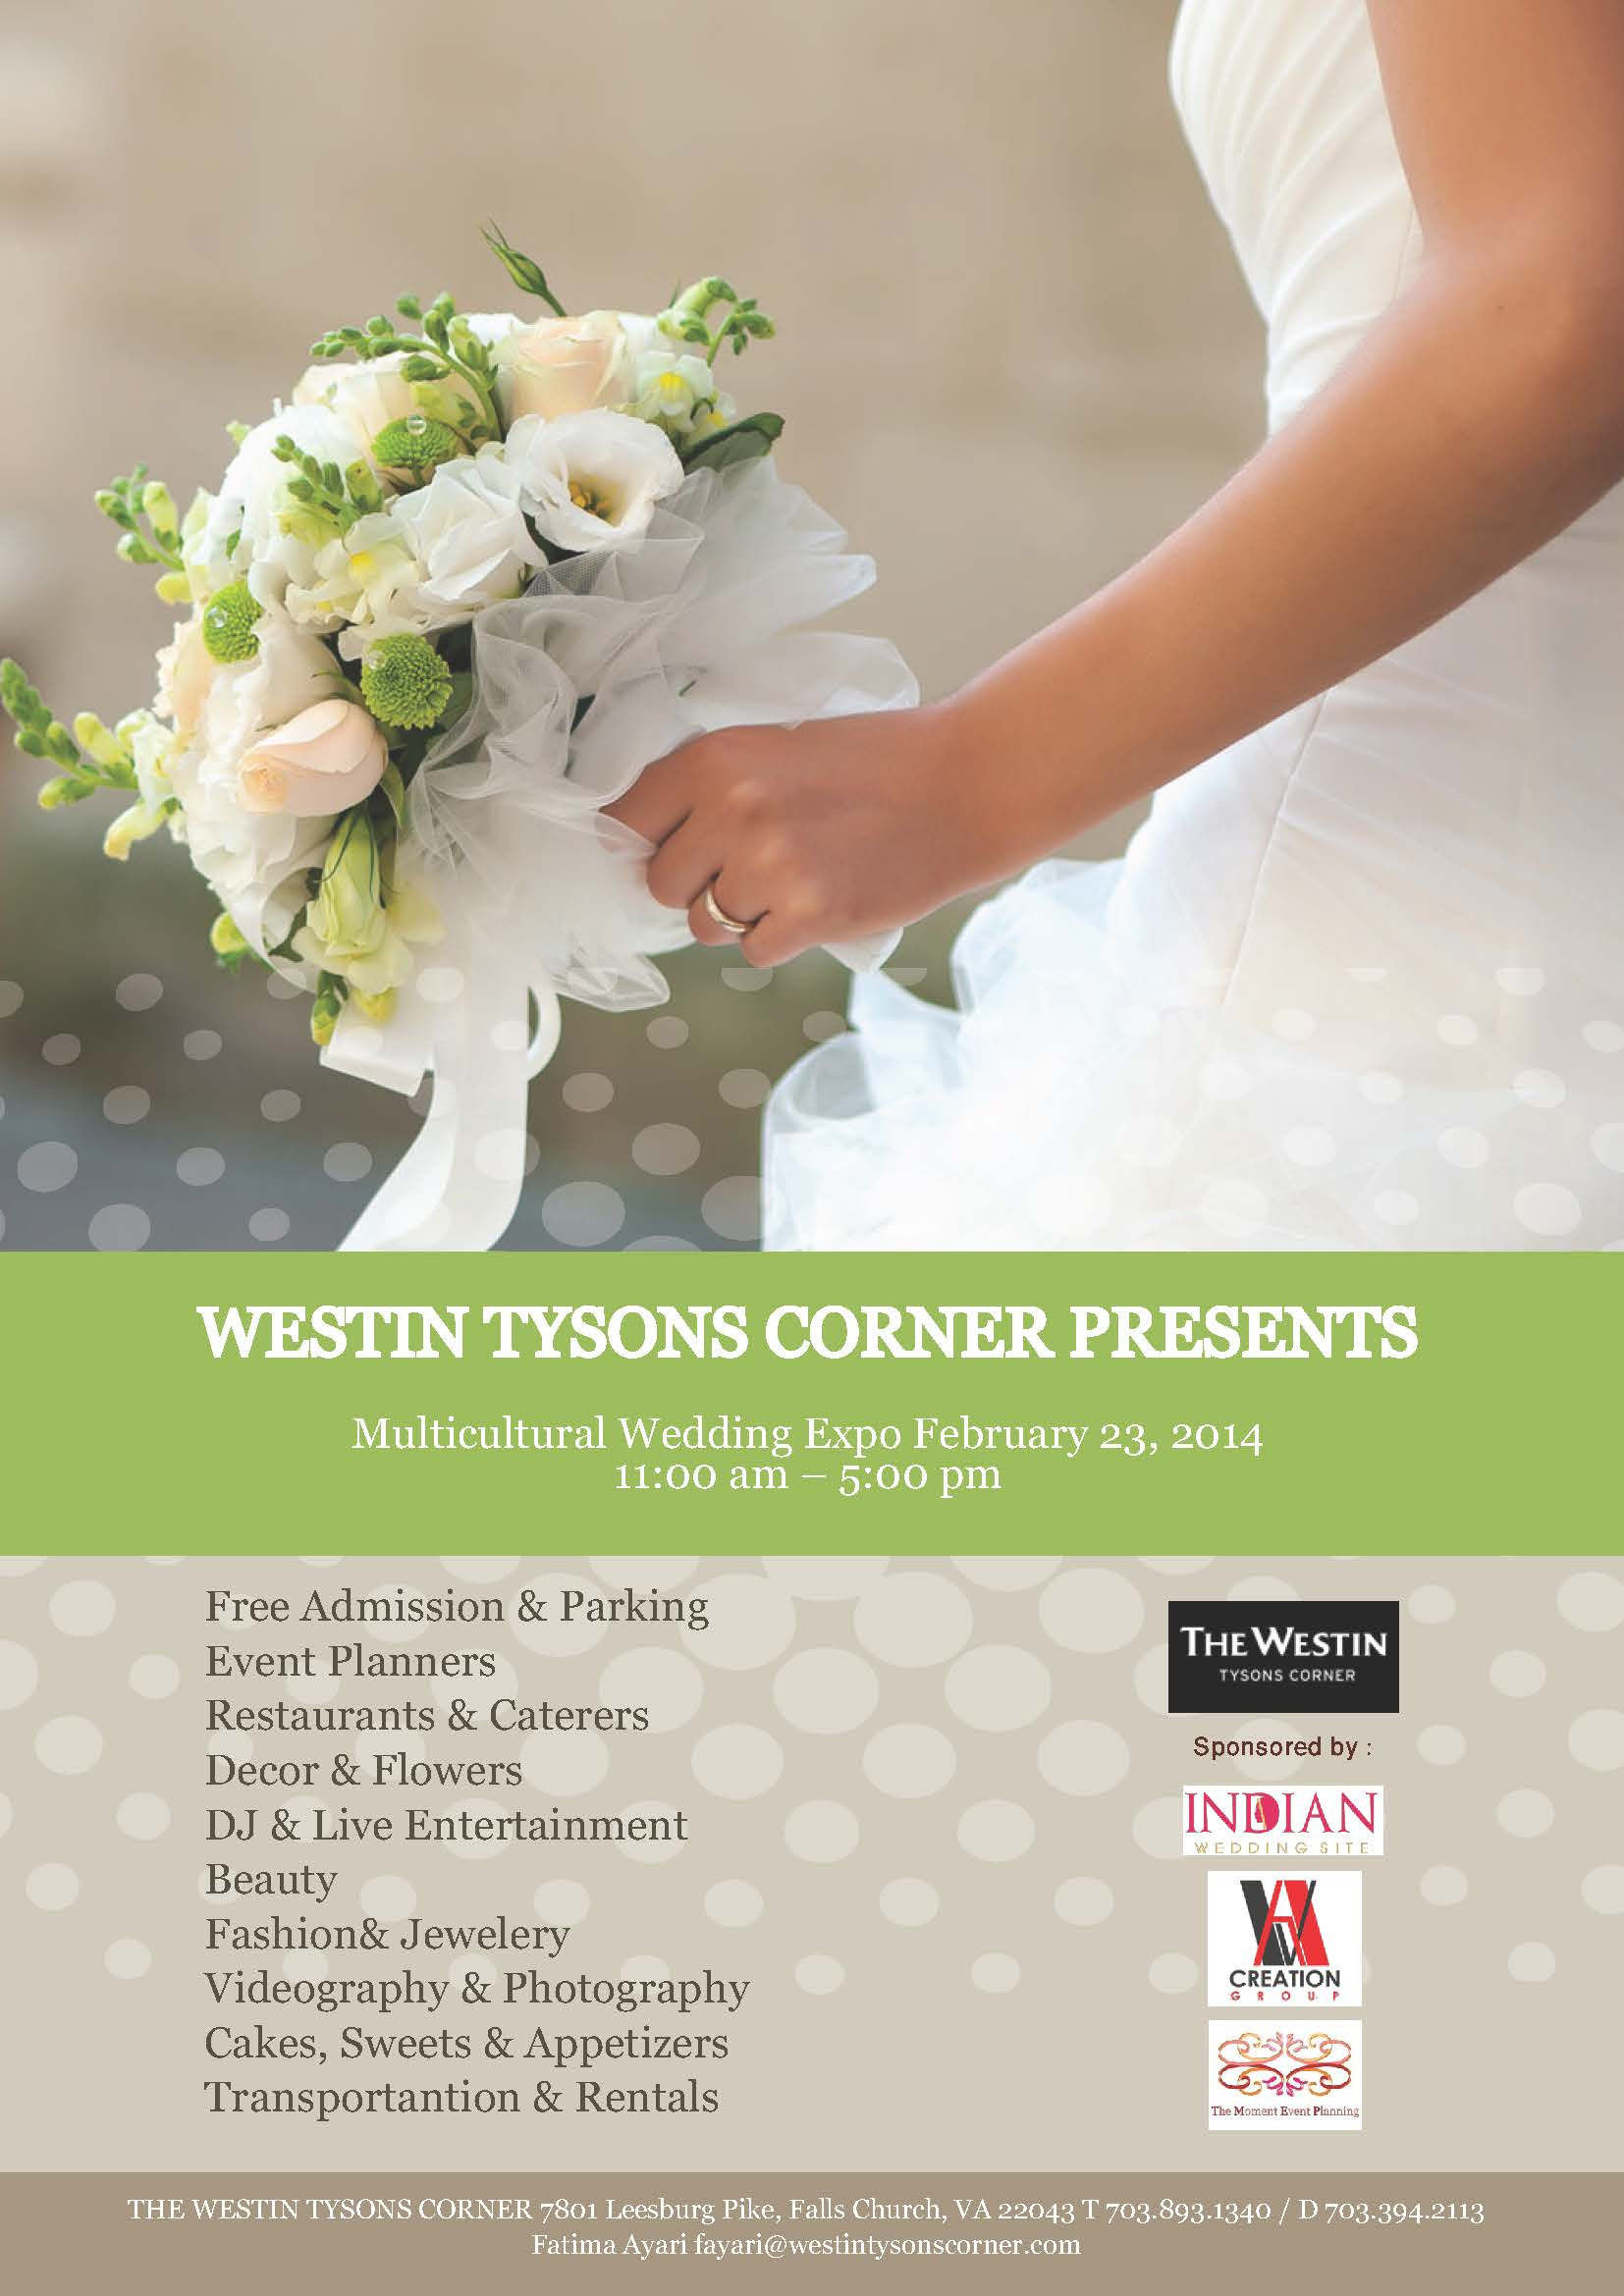 Westin Wedding Expo Flyer (2)